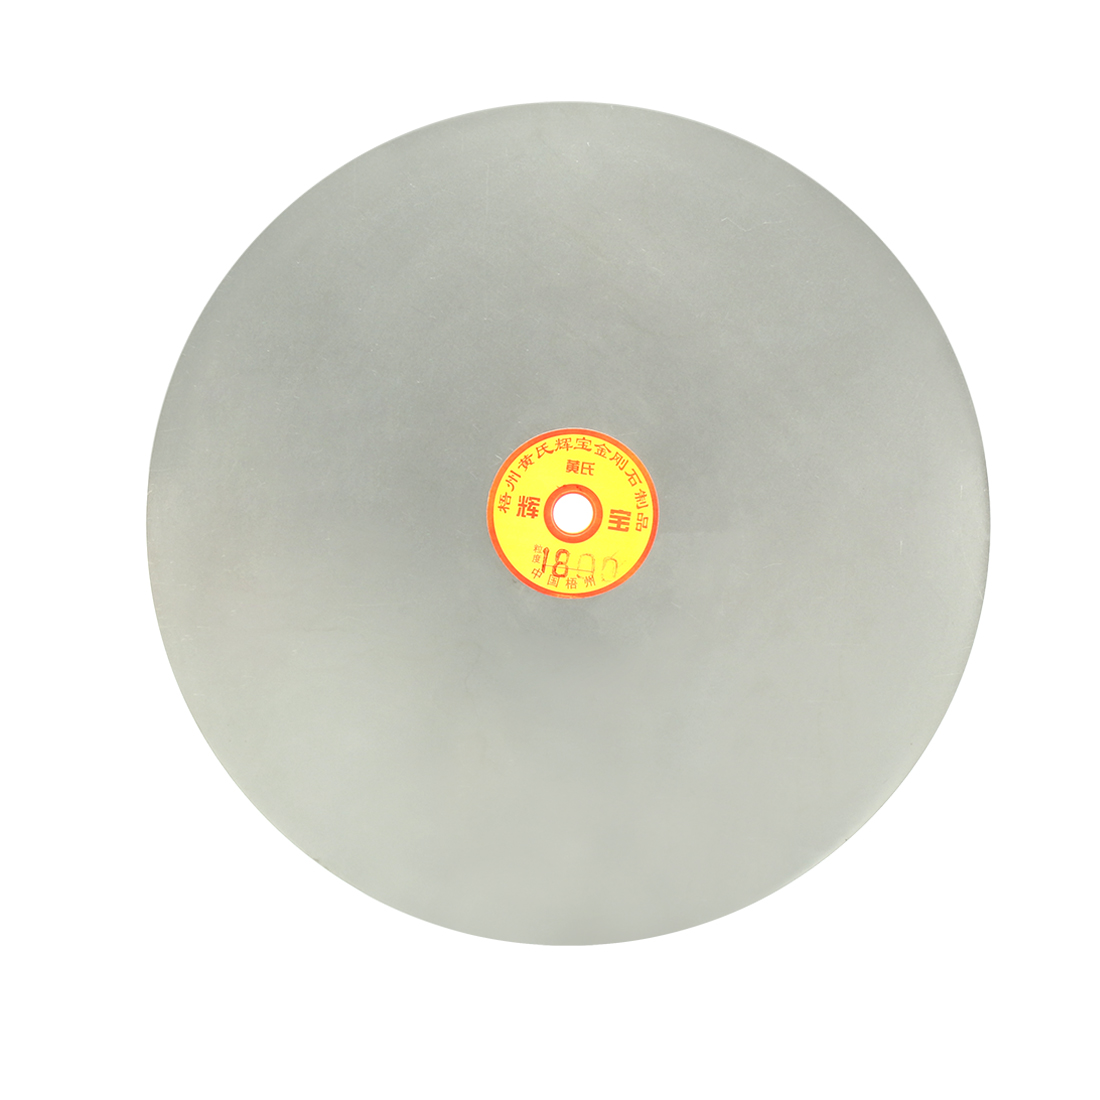 250mm 10-inch Grit 1800 Diamond Coated Flat Lap Disk Wheel Grinding Sanding Disc